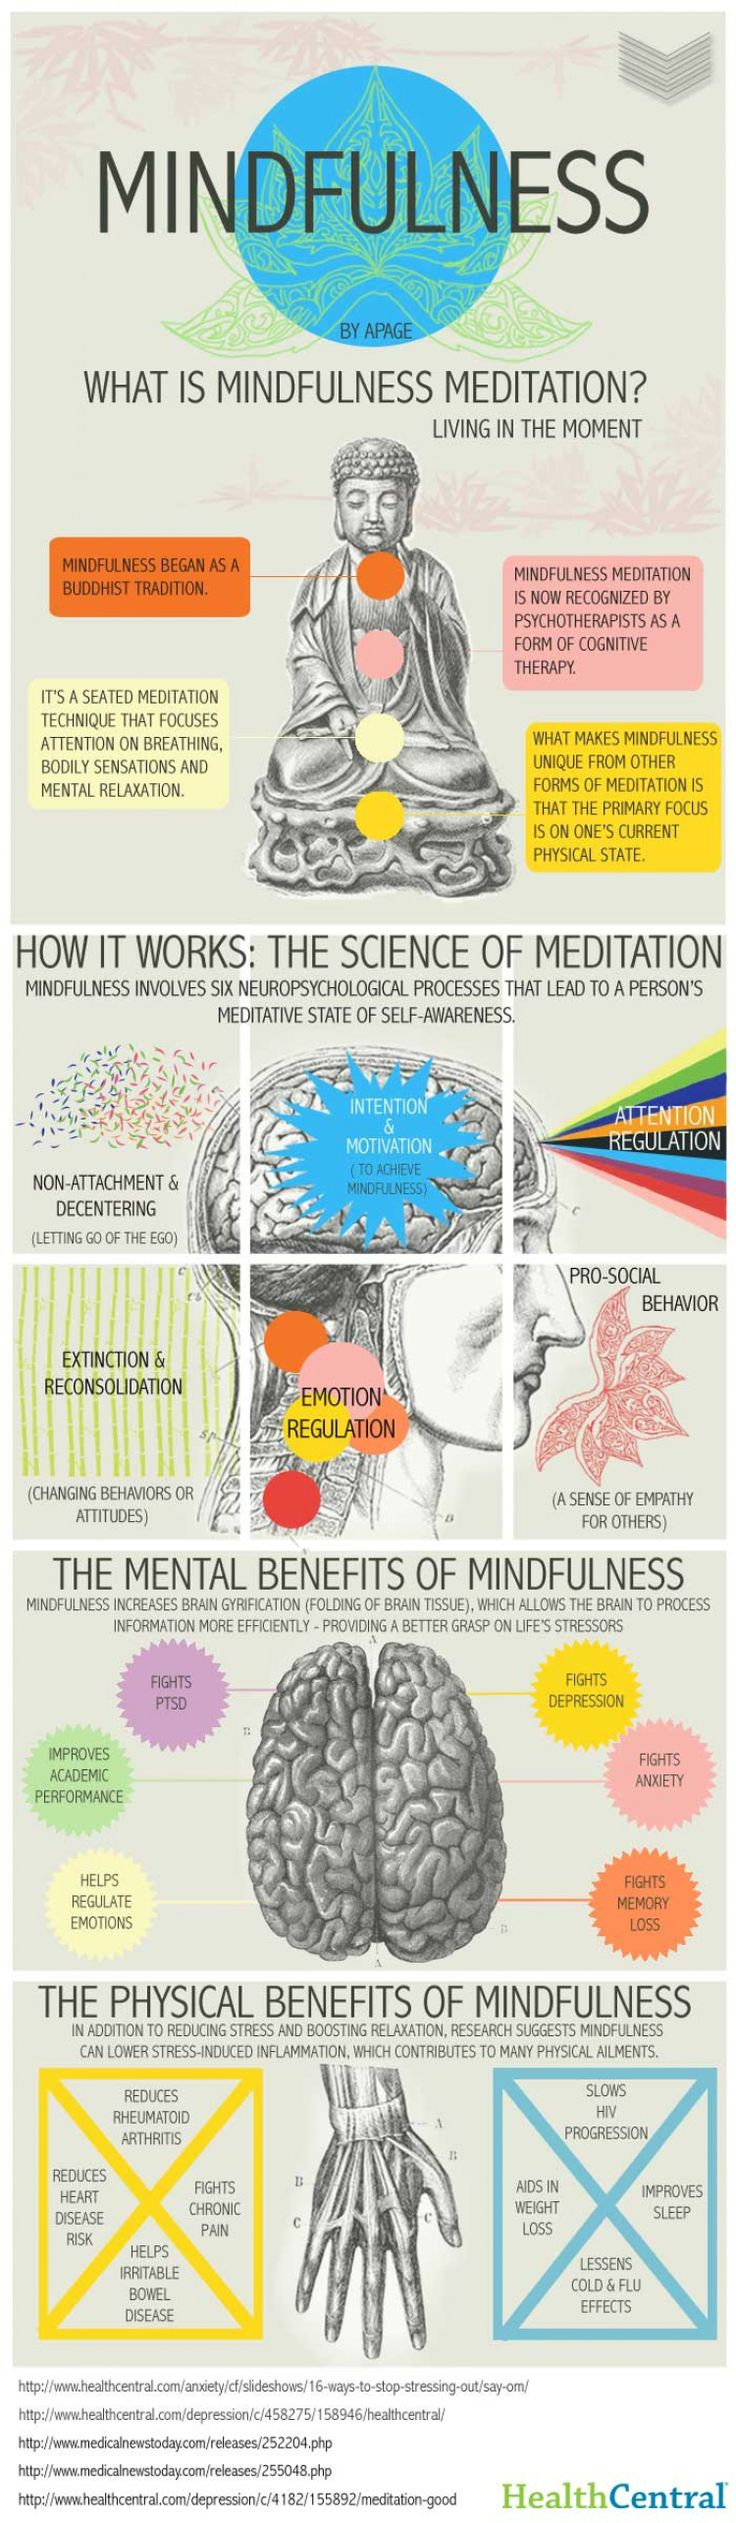 14 Benefits of Mindfulness. {Infographic}